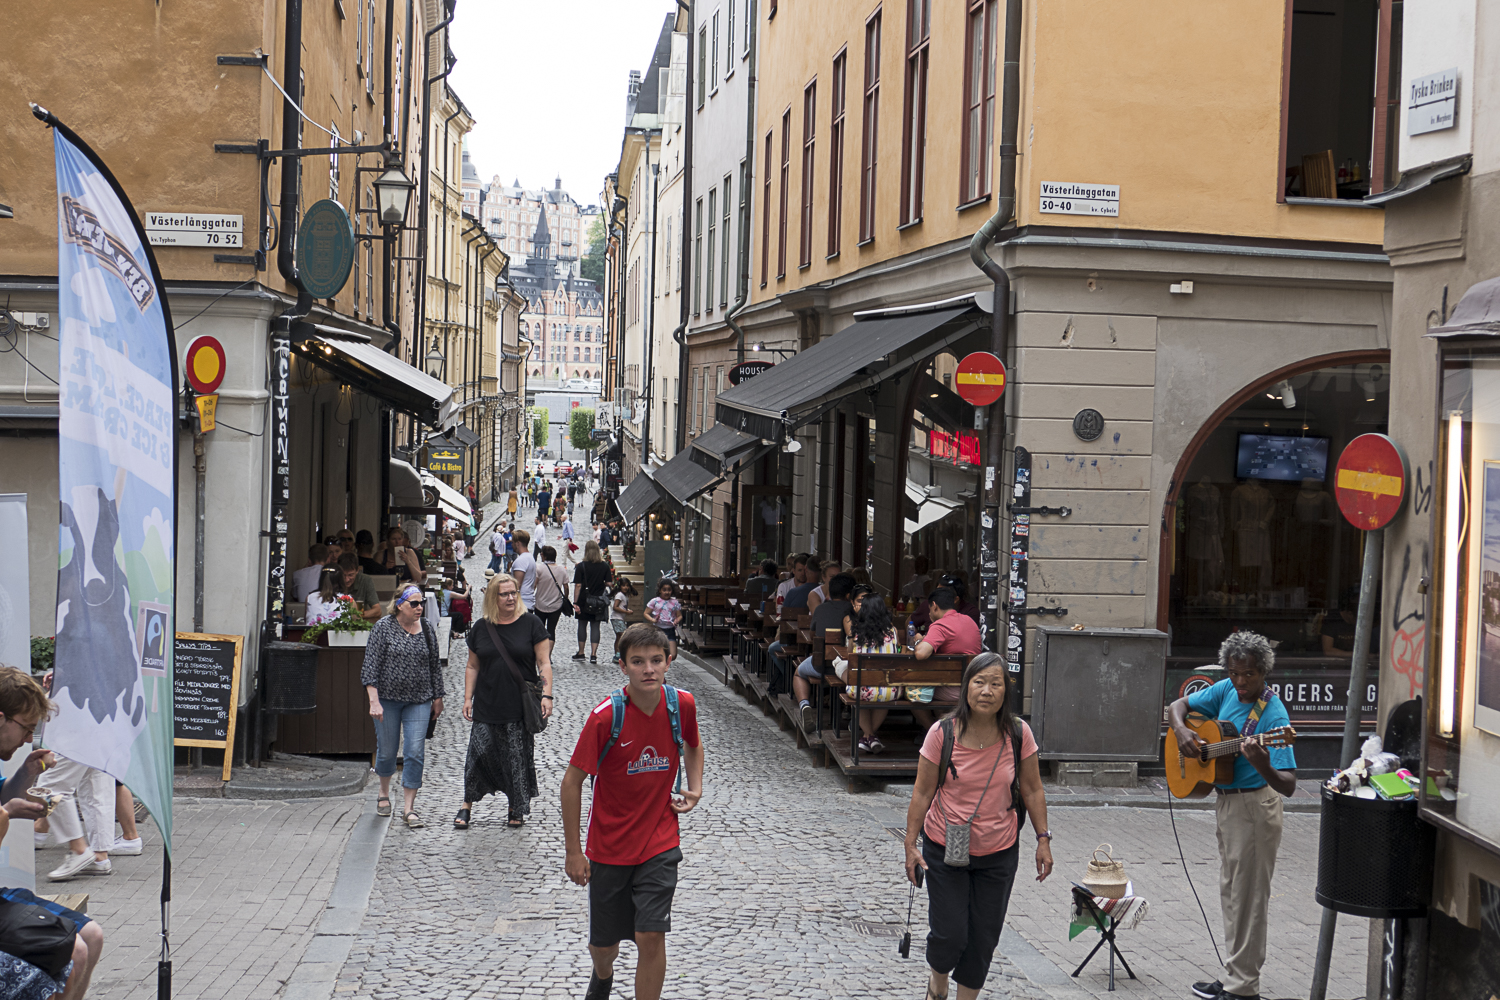 Typical street scene in Gamla Stan